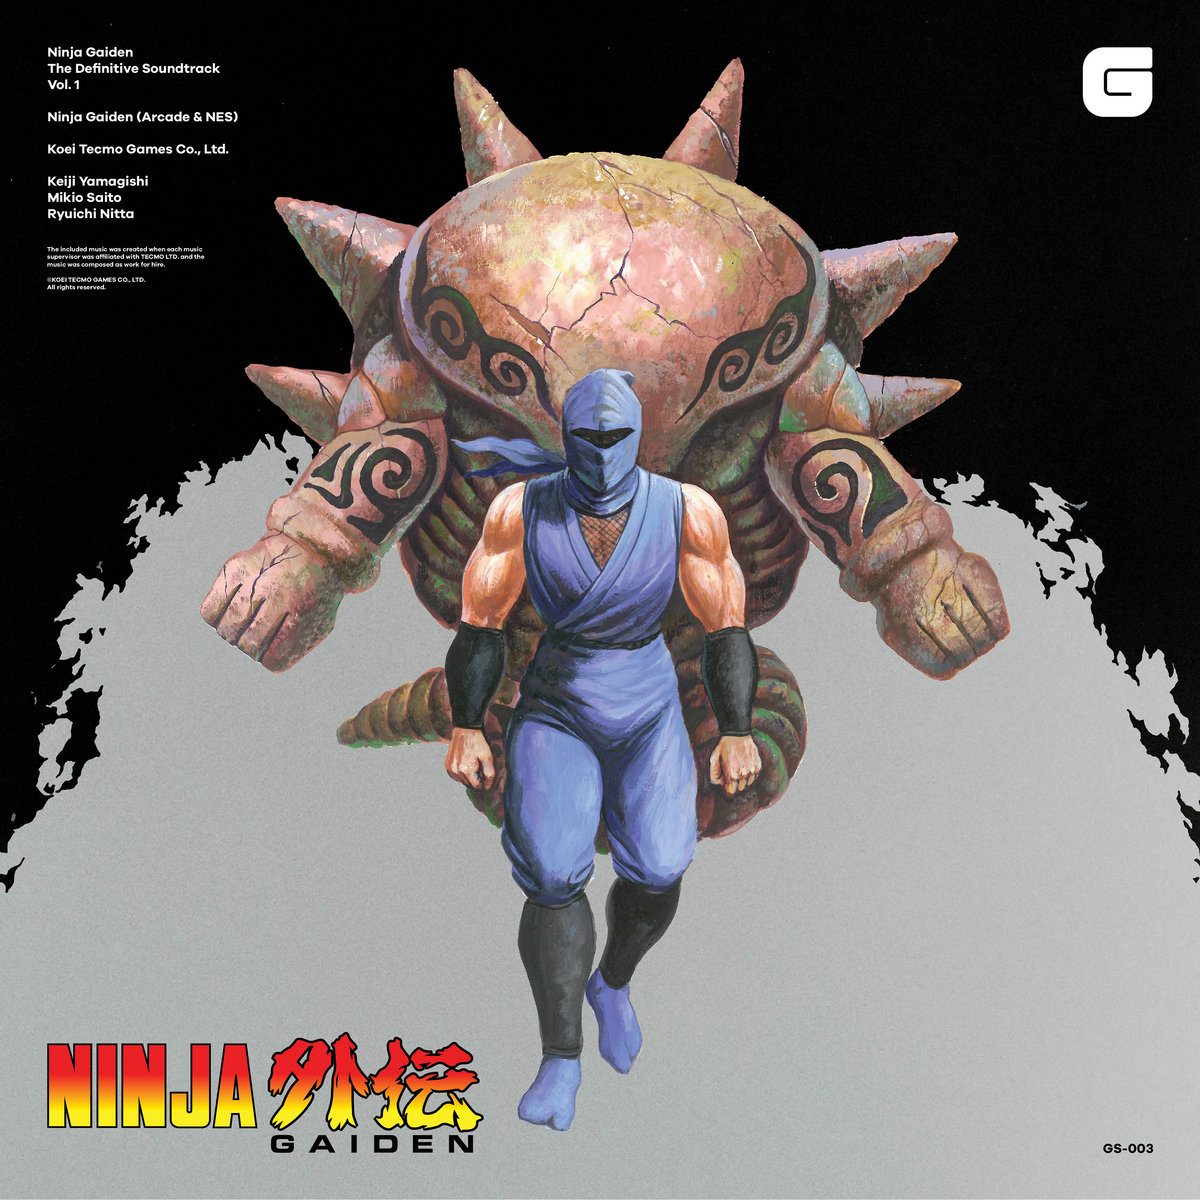 Ninja Gaiden The Definitive Soundtrack Vol 1 Koei Tecmo Games Co Ltd Brave Wave Productions